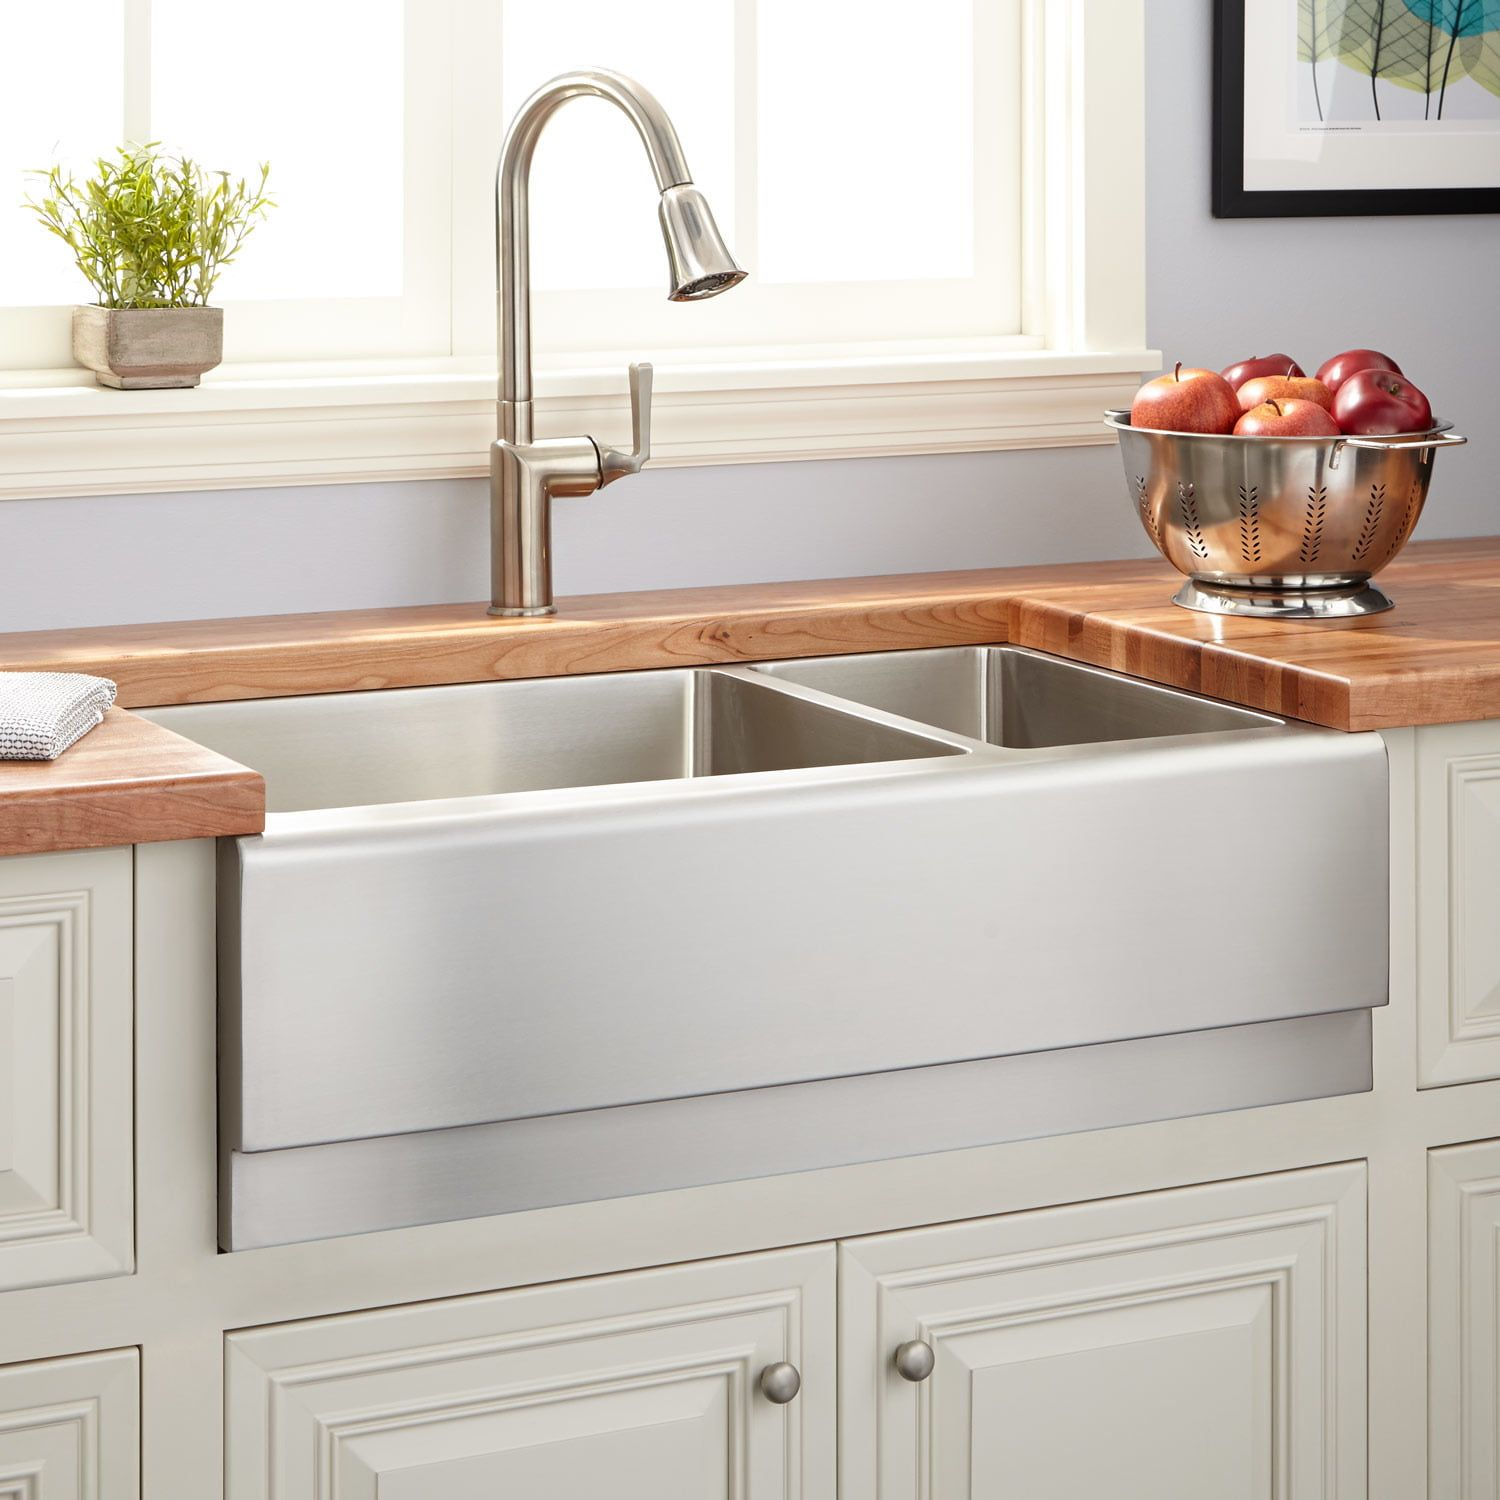 33 Piers 70 30 Offset Double Bowl Stainless Steel Farmhouse Sink In Tiered Apron Signature Hardware Stainless Steel Farmhouse Sink Farmhouse Sink Kitchen Stainless Farmhouse Sink